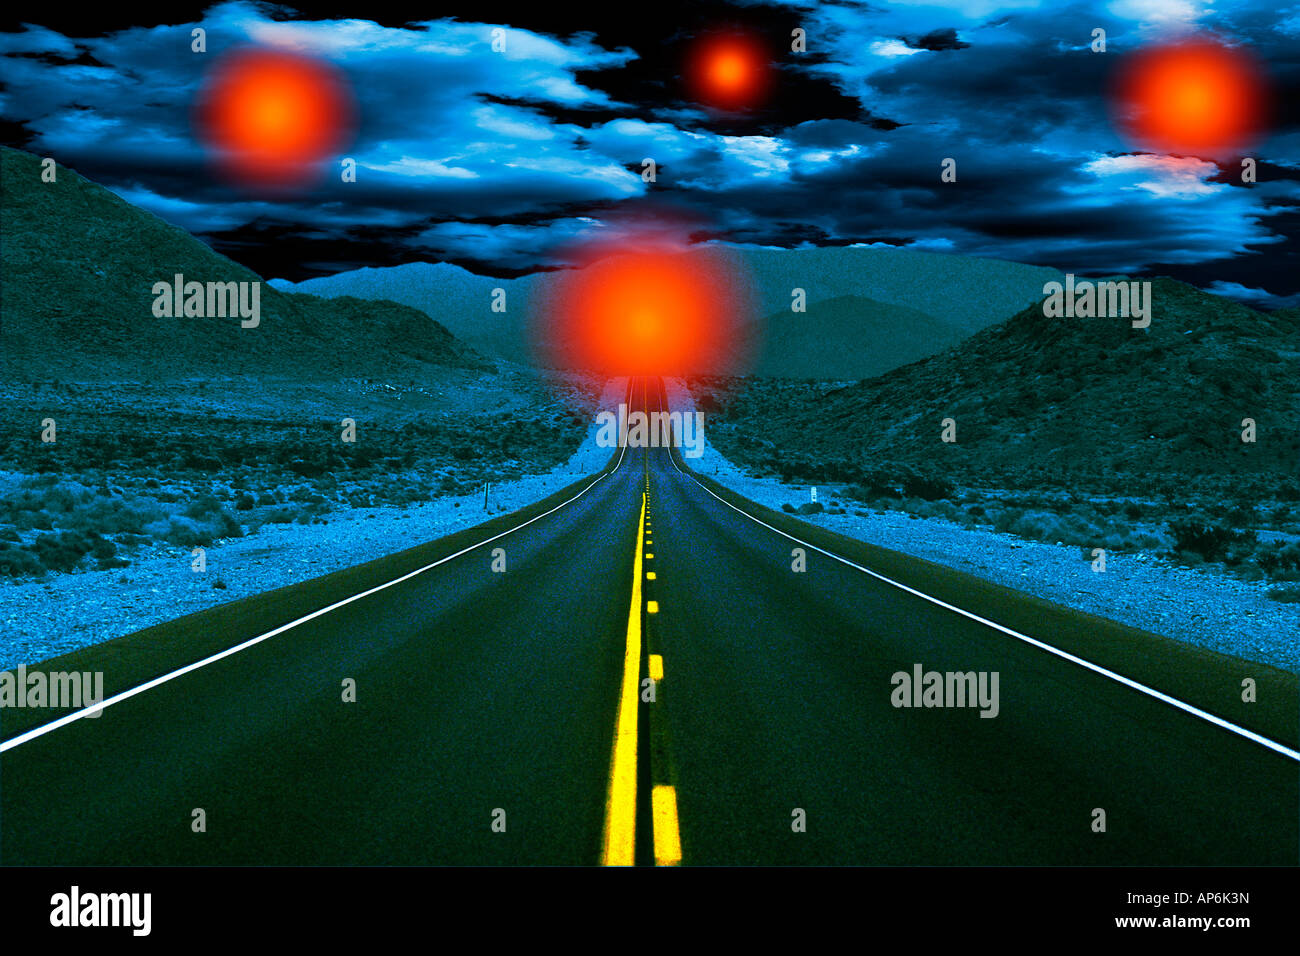 Empty road at night with UFO, Extraterrestrial, digital composite - Stock Image